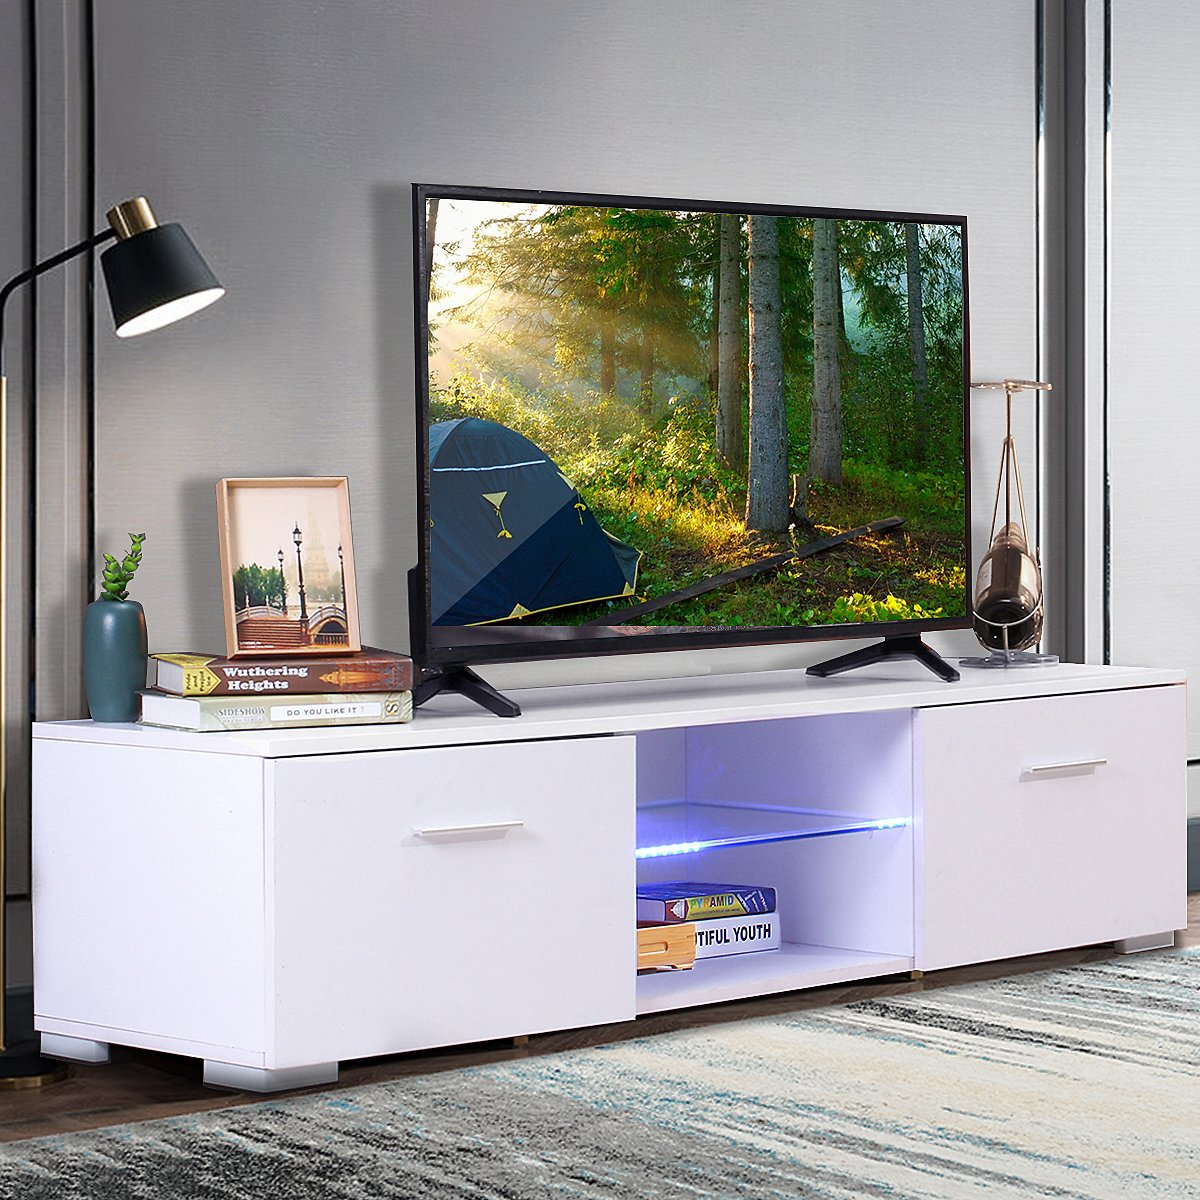 Modern TV Stand for TVs Up to 55'', High Gloss TV Cabinet W/RGB LED Backlights, 2 Open Shelves and 2 Storage Drawers - Entertain